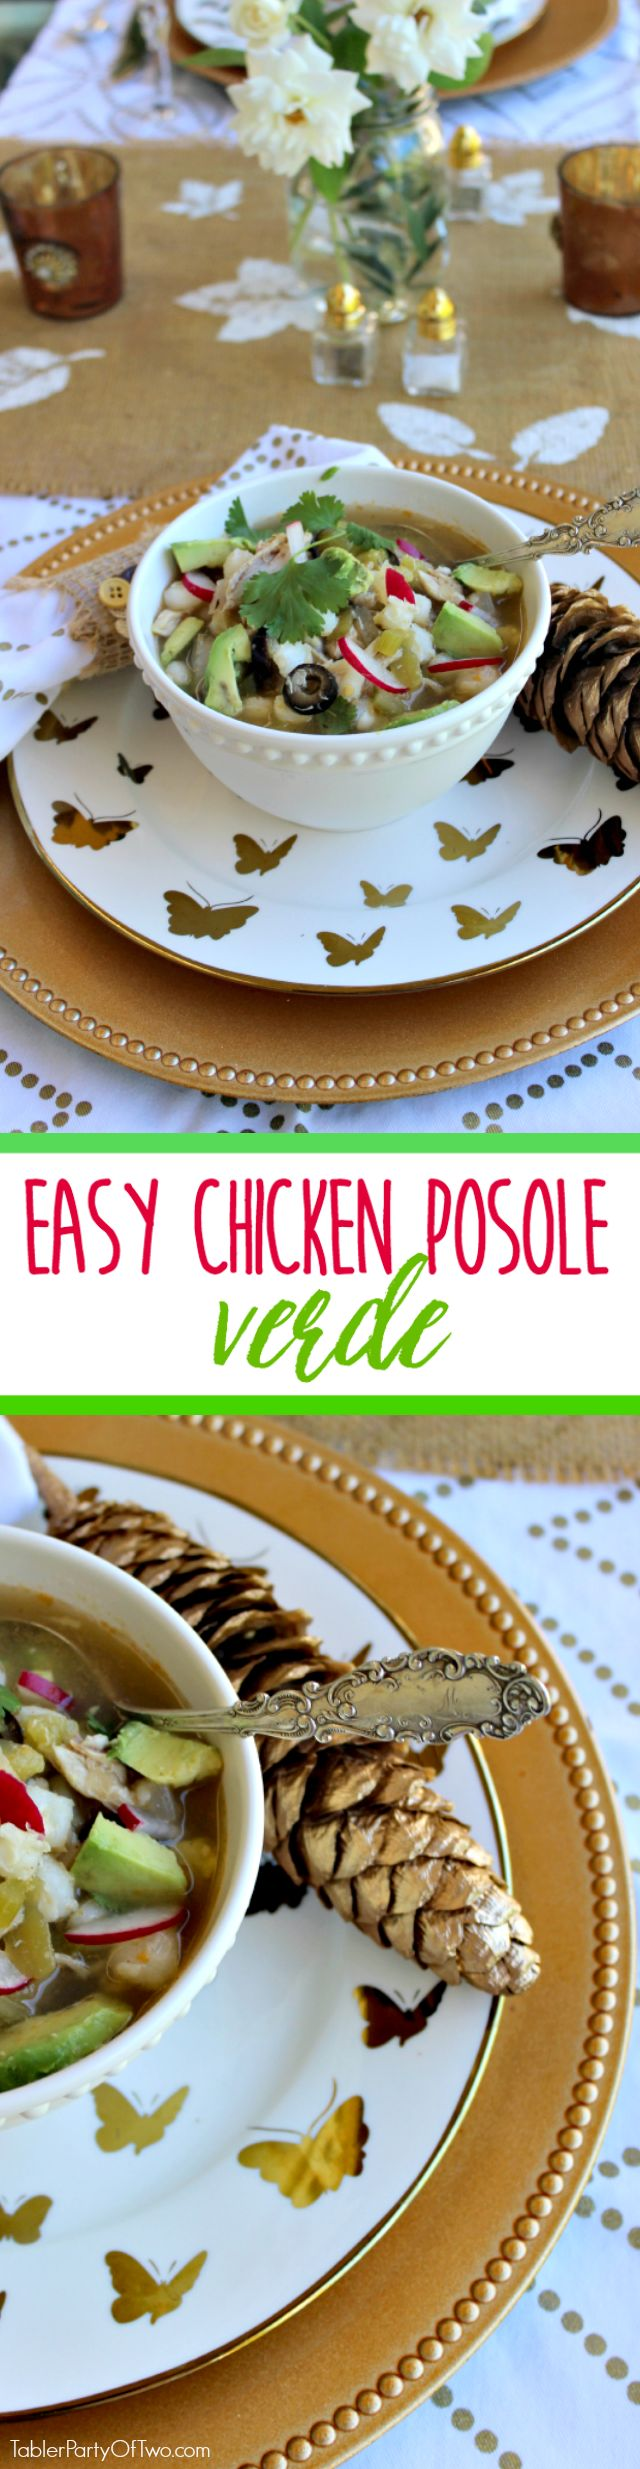 Easy Chicken Posole Verde is so AMAZING! And one of my favorite things about the recipe is that it literally takes only 20 minutes to make. It's perfect for a chilly fall or winter day and will please the whole family! TablerPartyofTwo.com